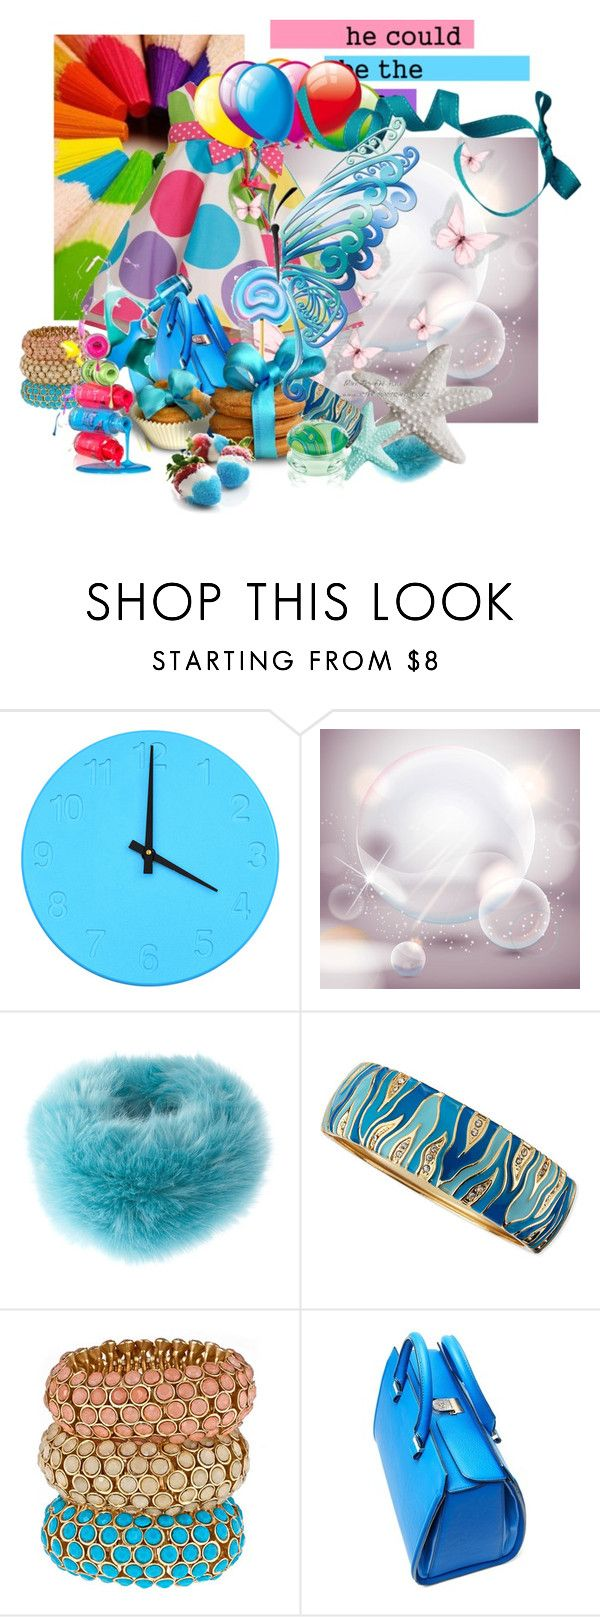 """""""мила 5 лет"""" by marina-cmii ❤ liked on Polyvore featuring Loll Designs, ASOS, Sequin, Blu Bijoux, Victoria Beckham, 2true Cosmetics and Emilio Pucci"""